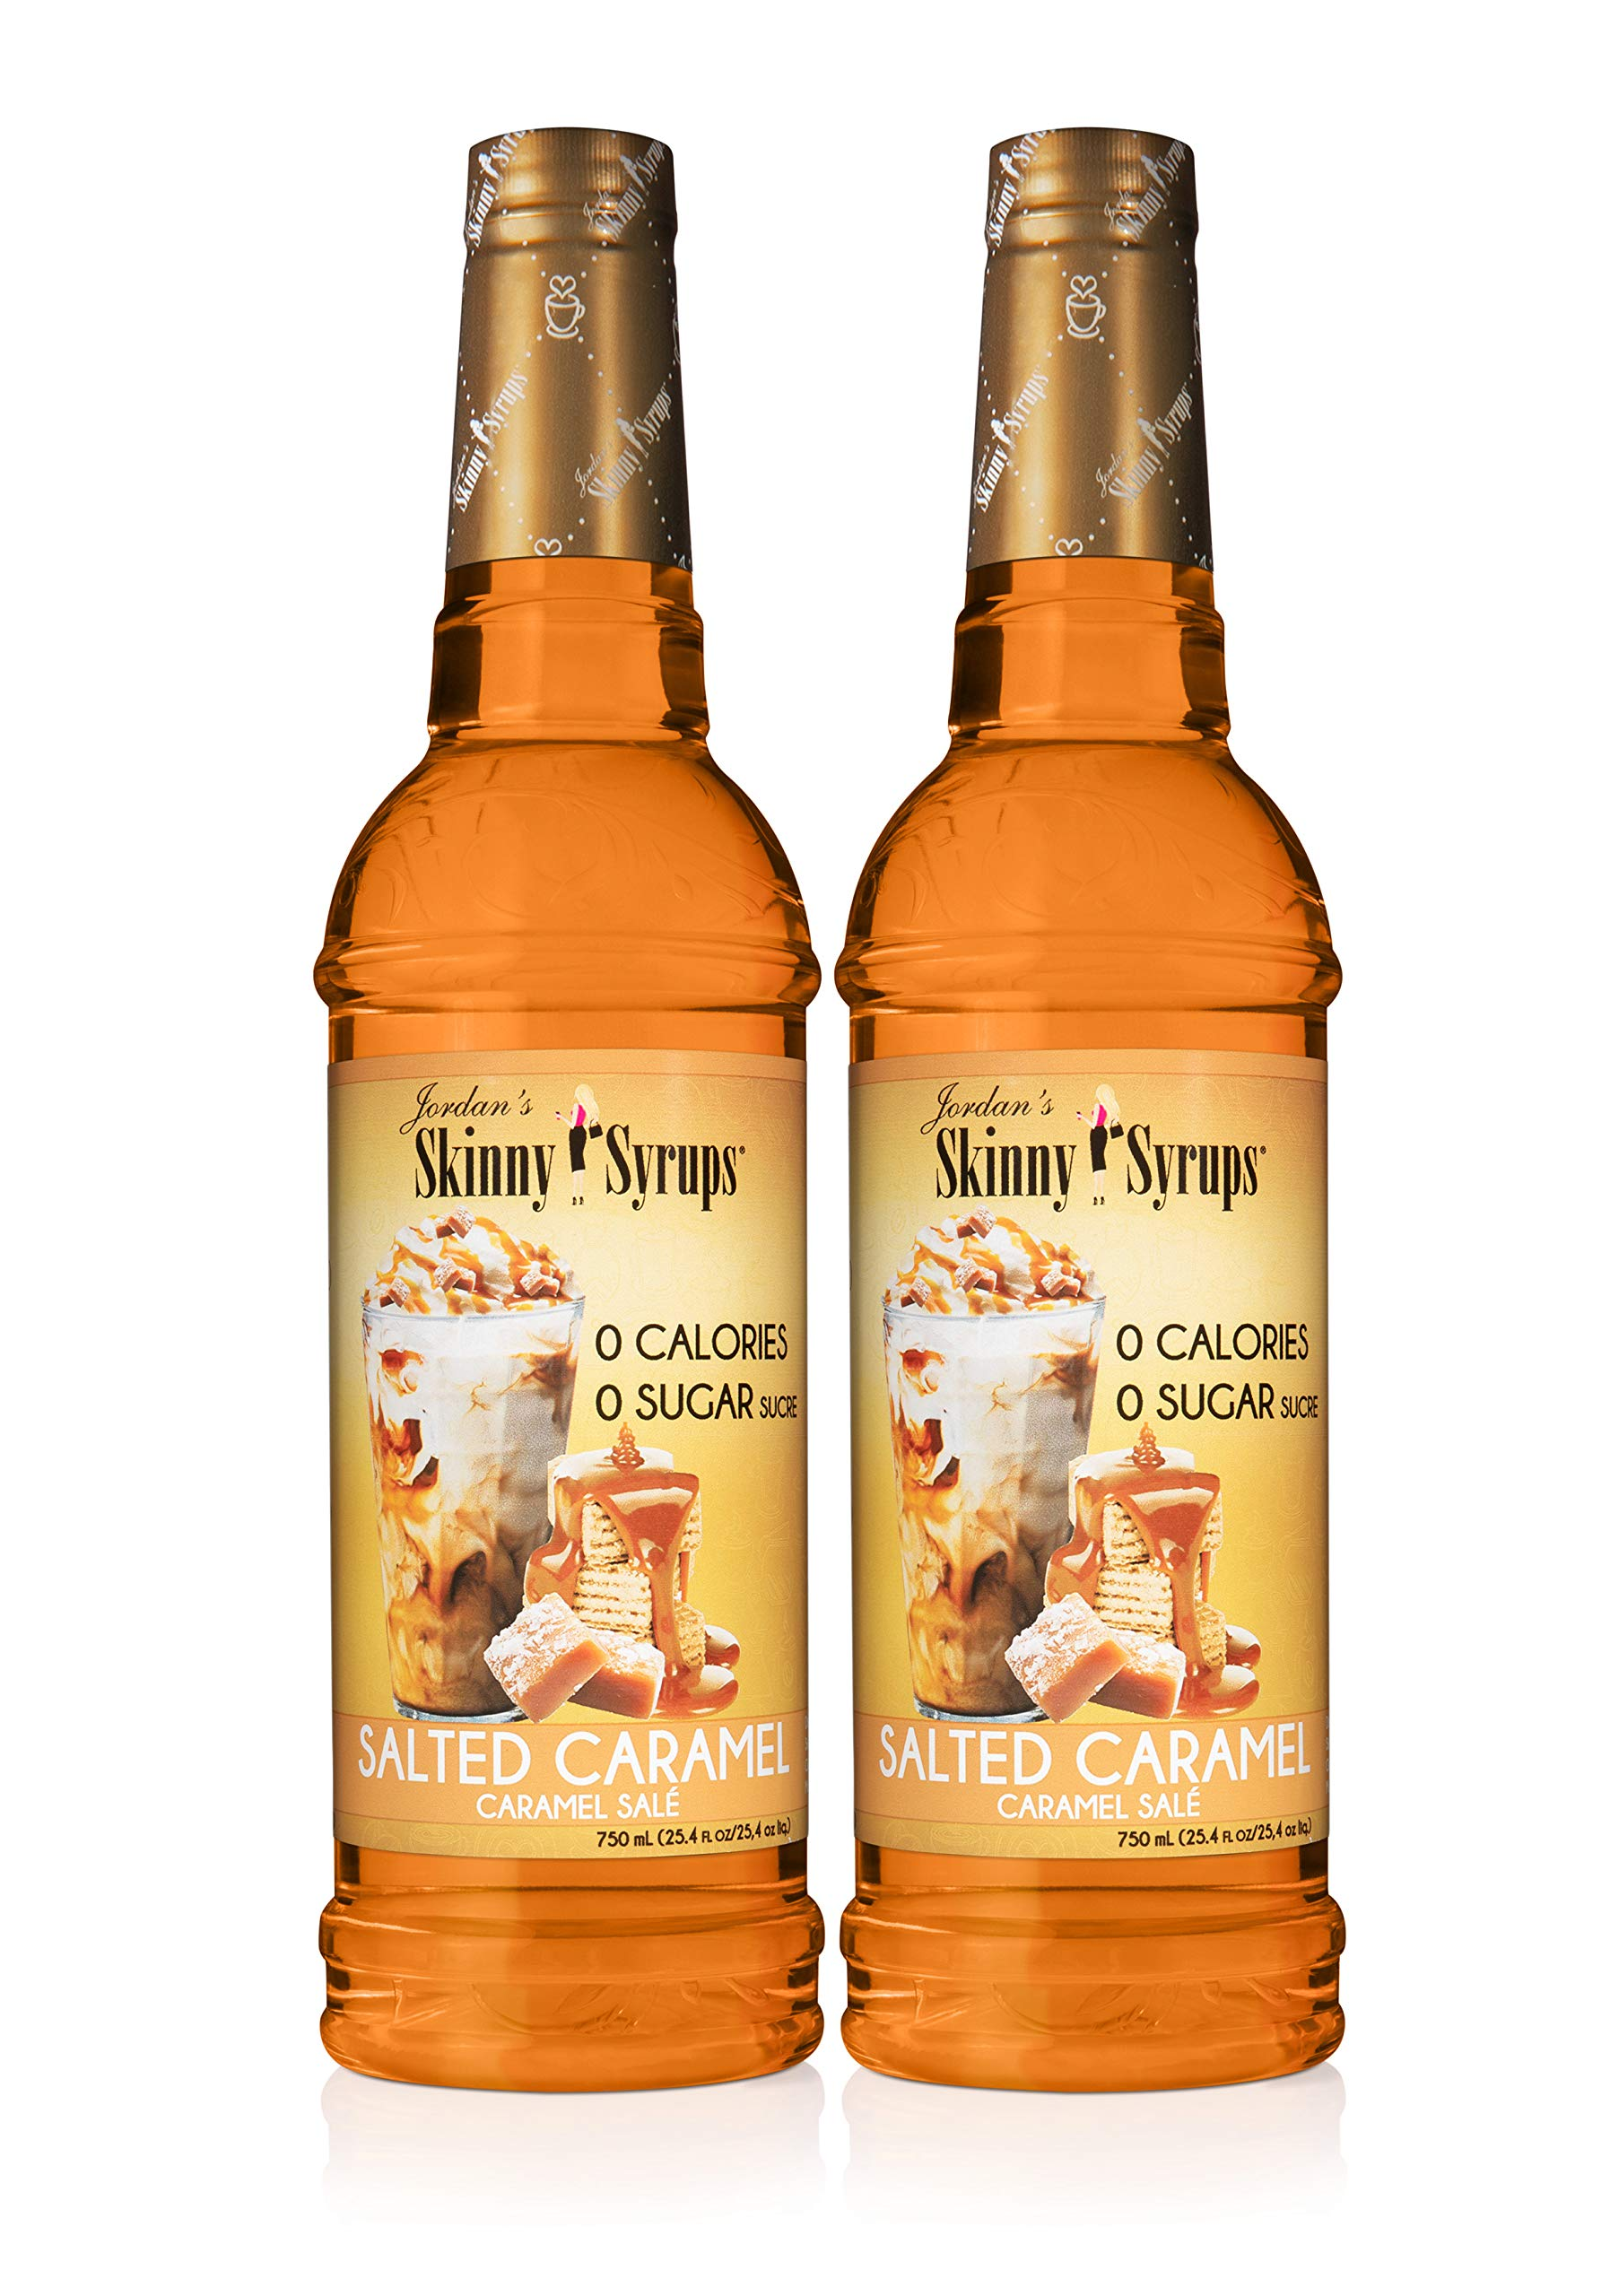 Jordan's Skinny Syrups Salted Caramel, Sugar Free Flavoring Syrup, 25.4 Ounce Bottle (Pack of 2)